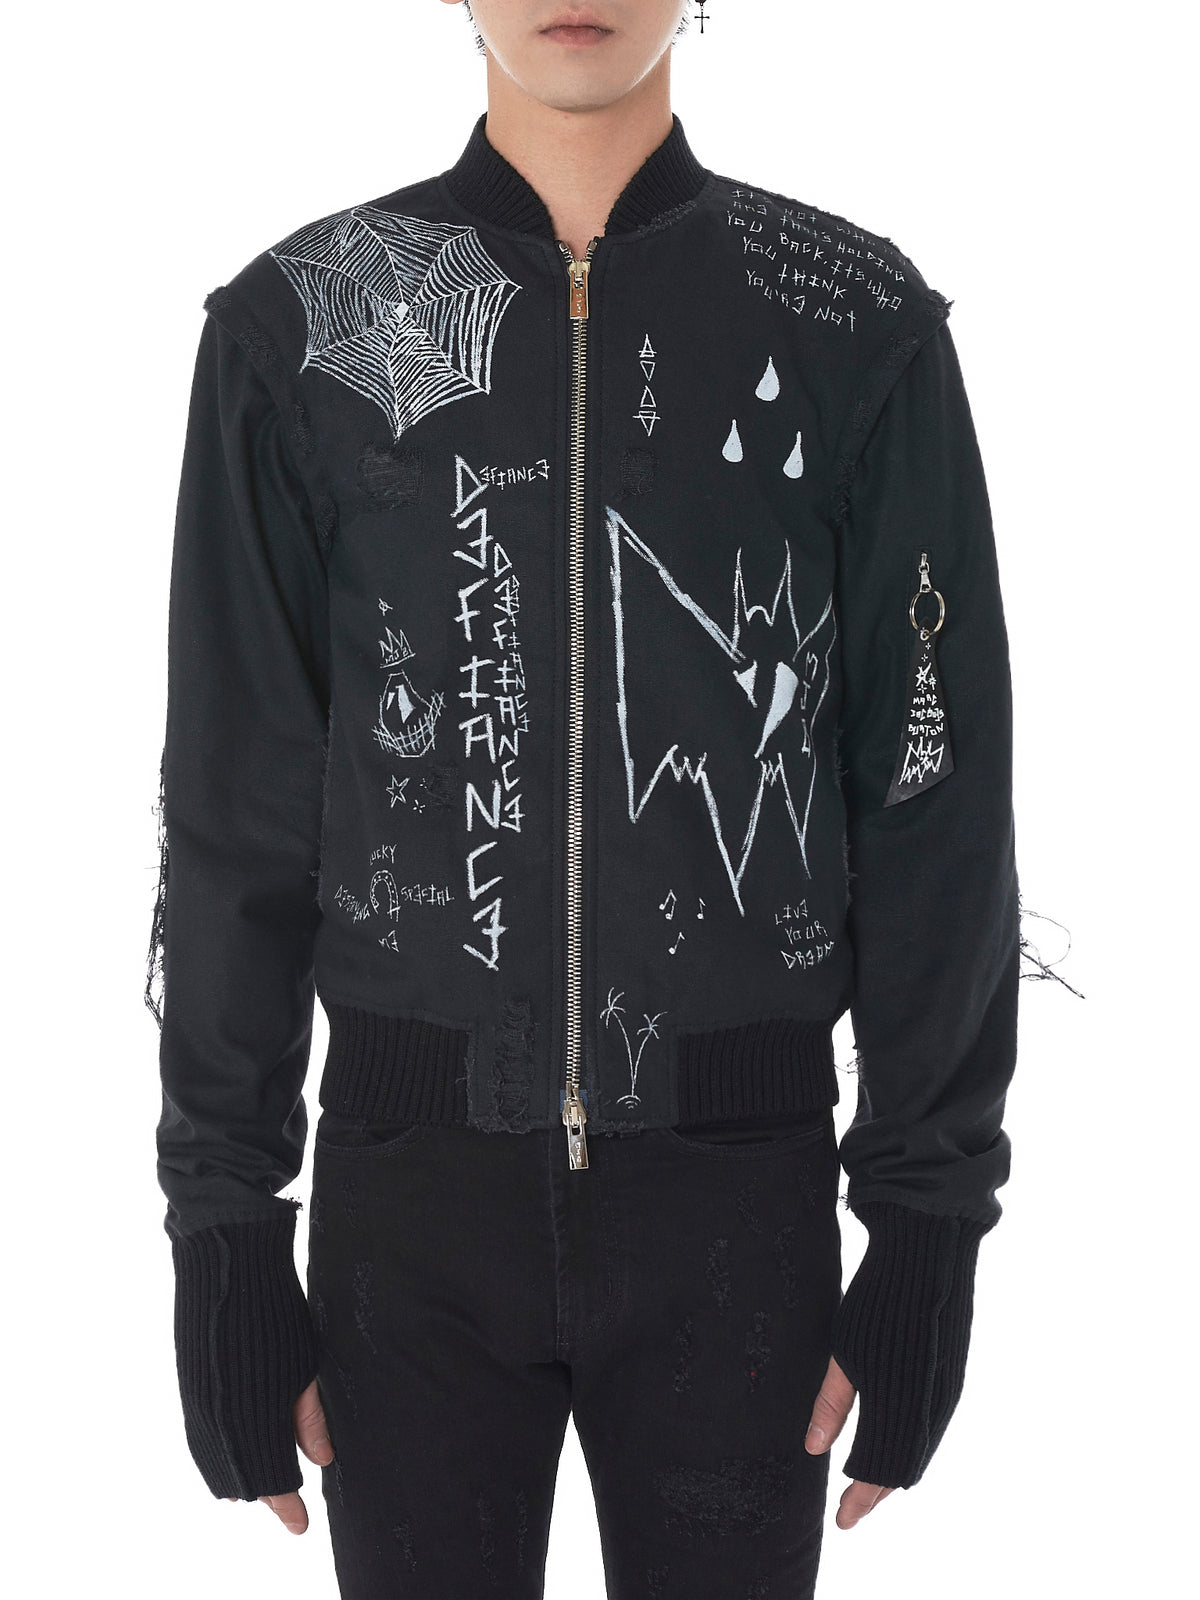 Hand-Painted Silk Bomber Jacket (ATTPR-BLACK)